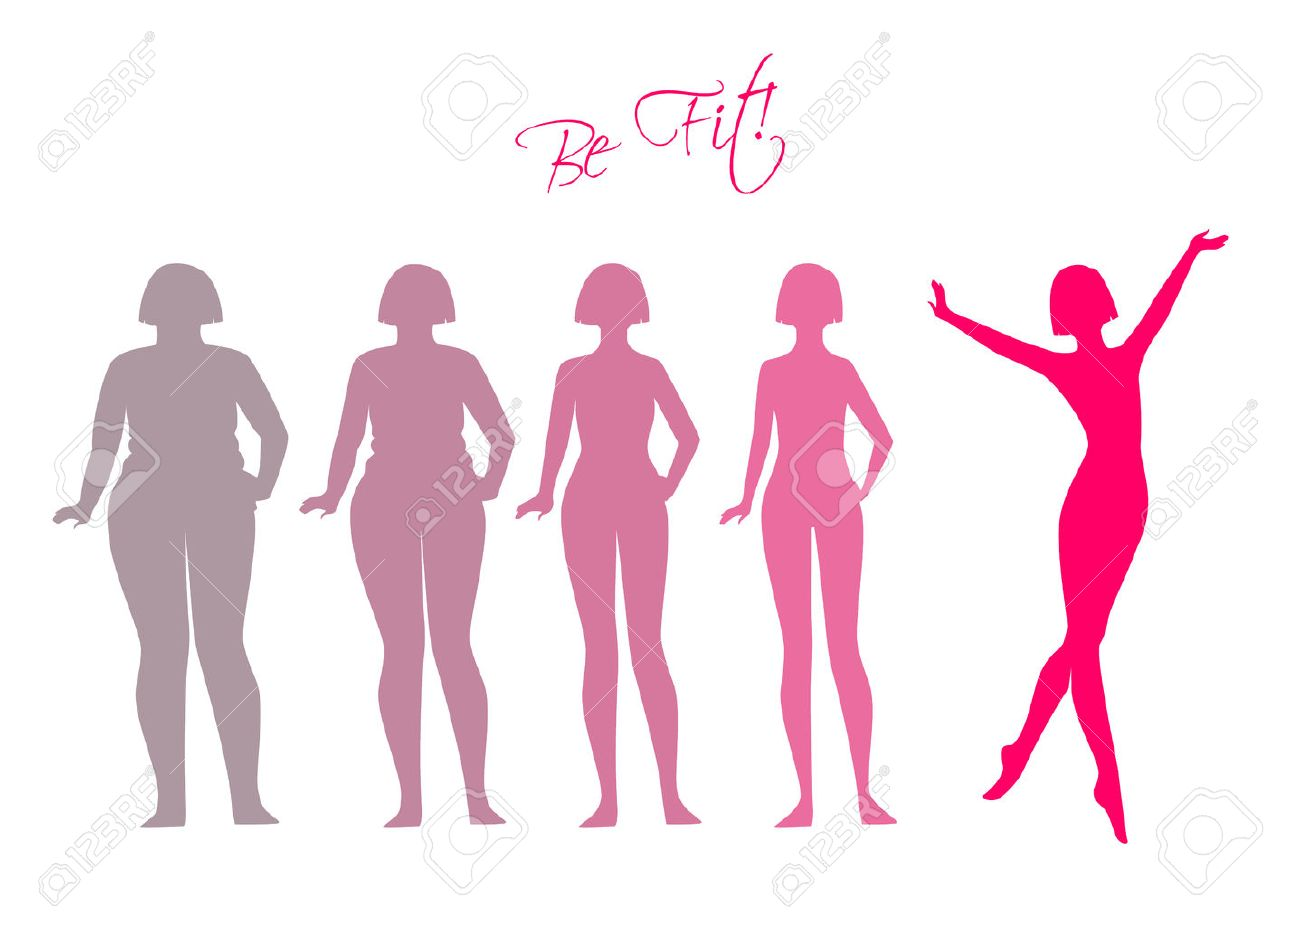 Vector illustration of Be fit, woman silhouette images - 36657265